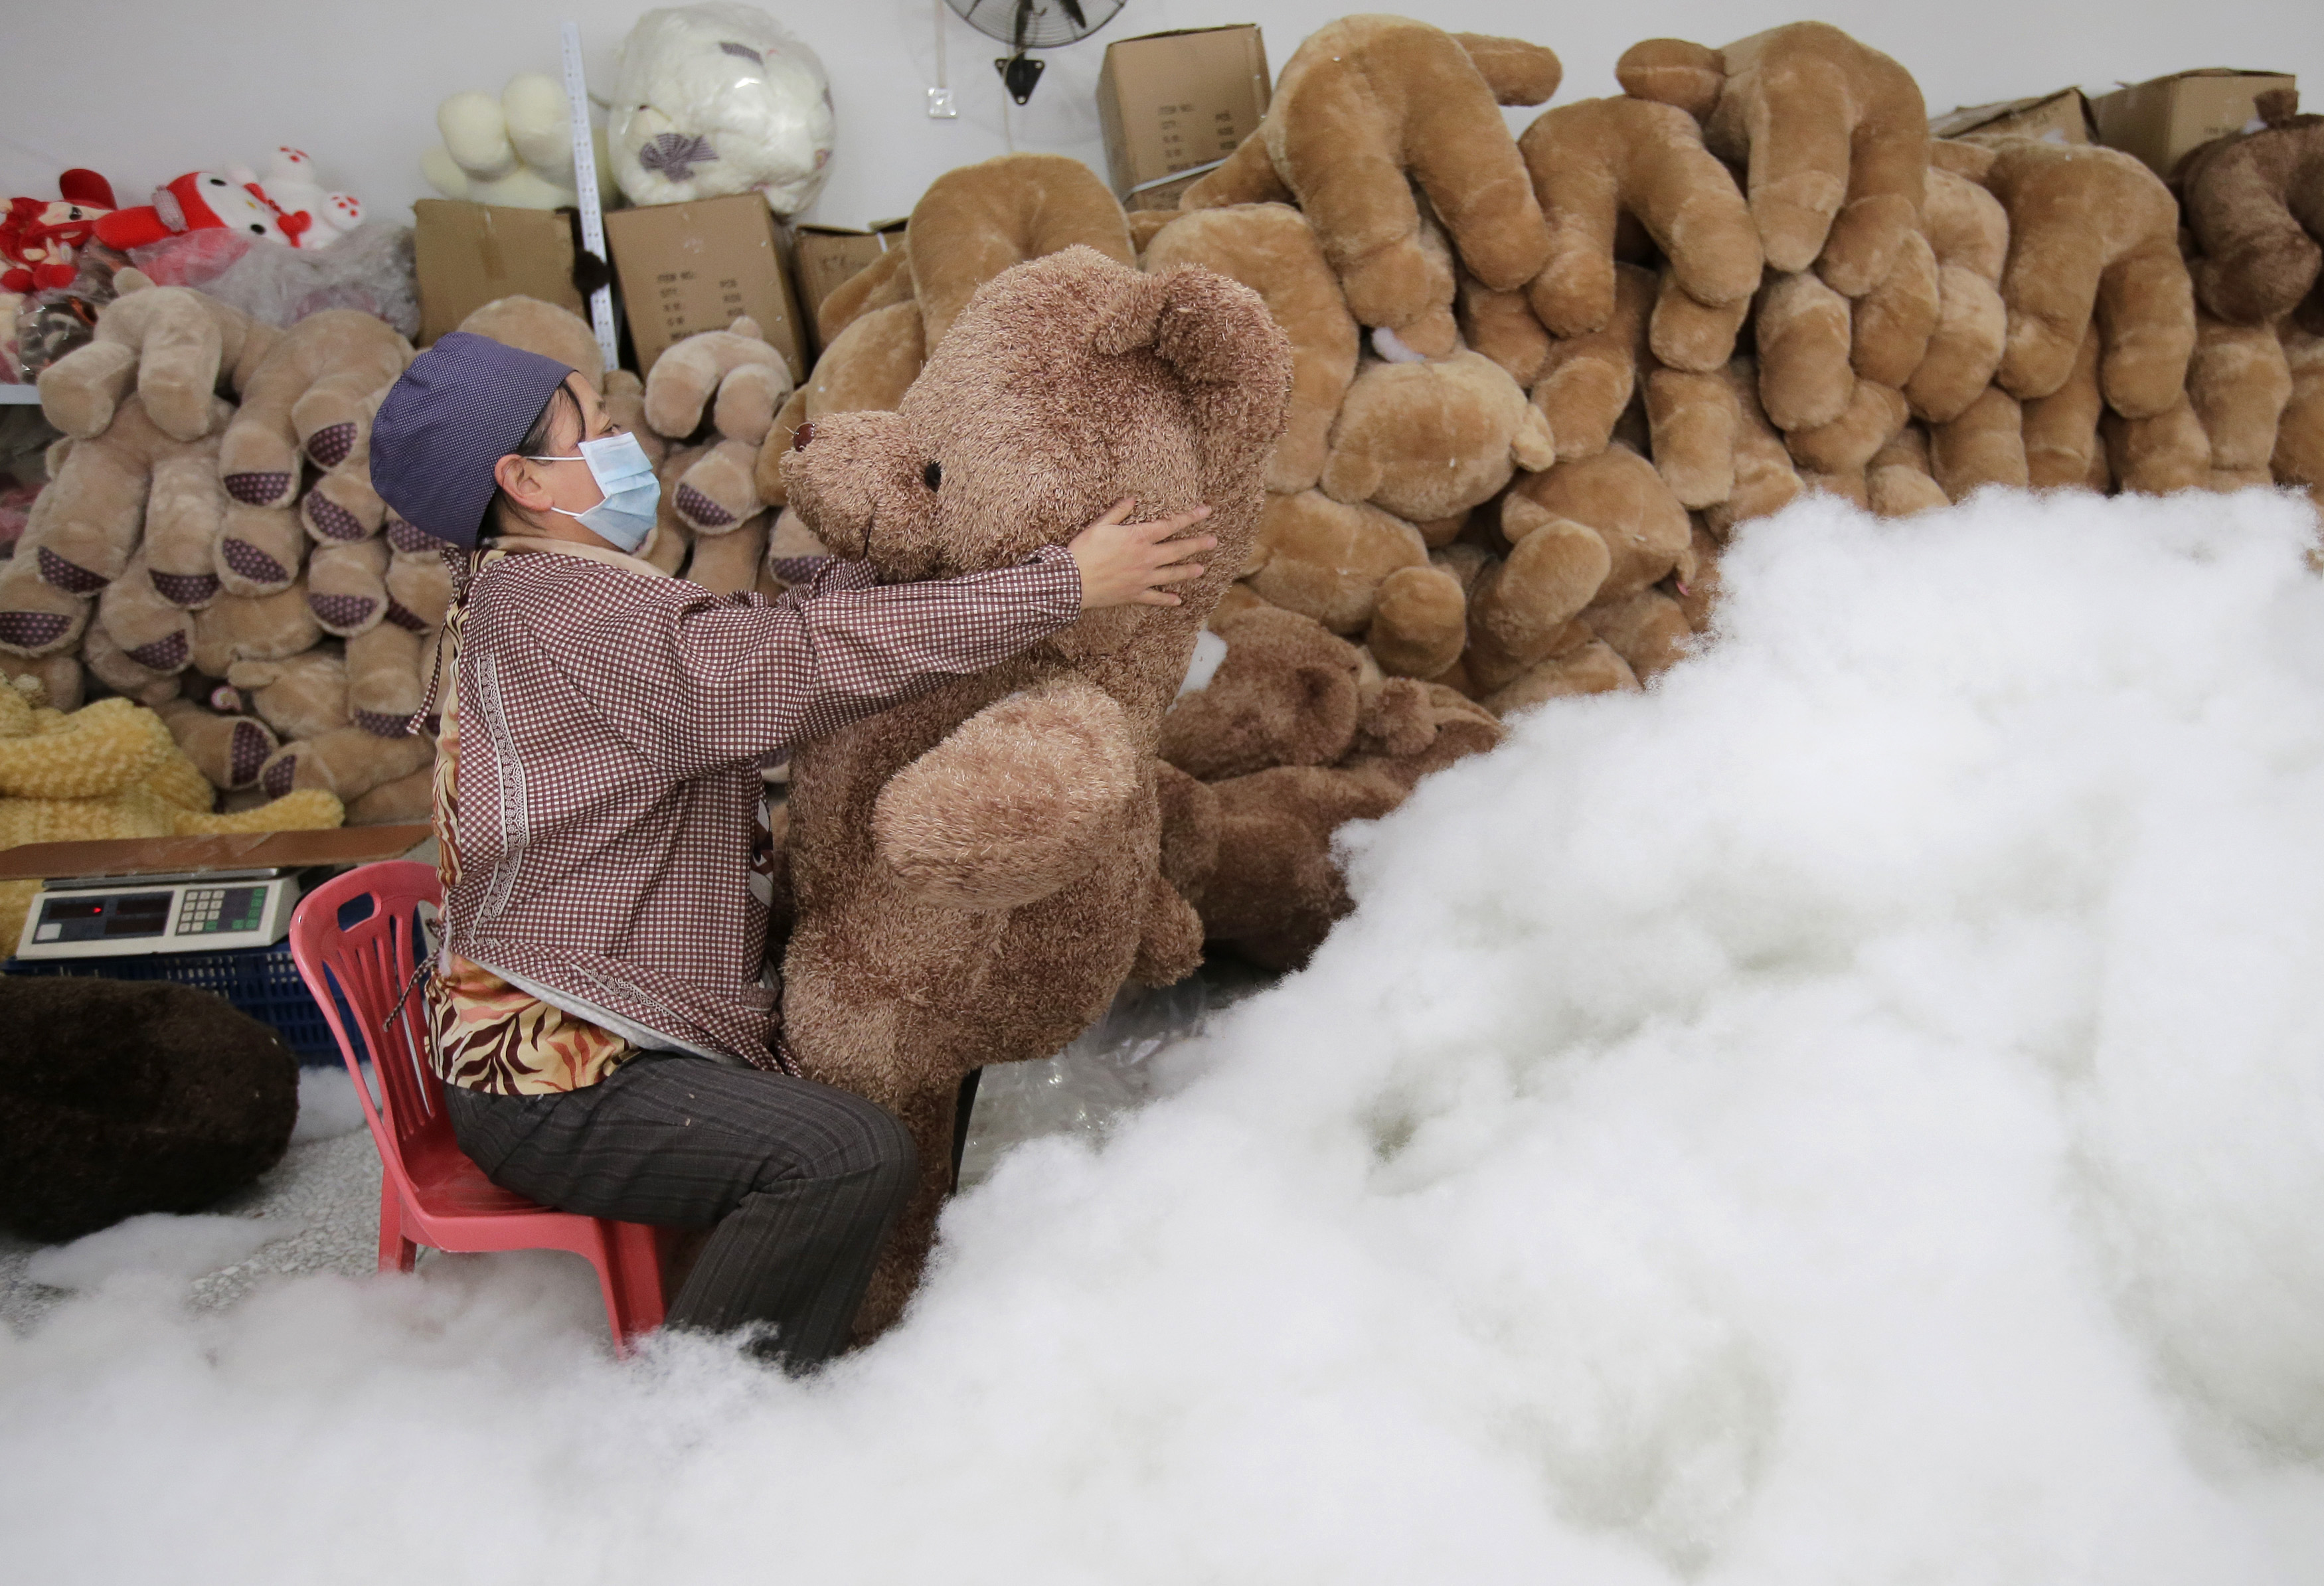 A worker stuffs a toy bear with cotton at a toy factory in Wuhan